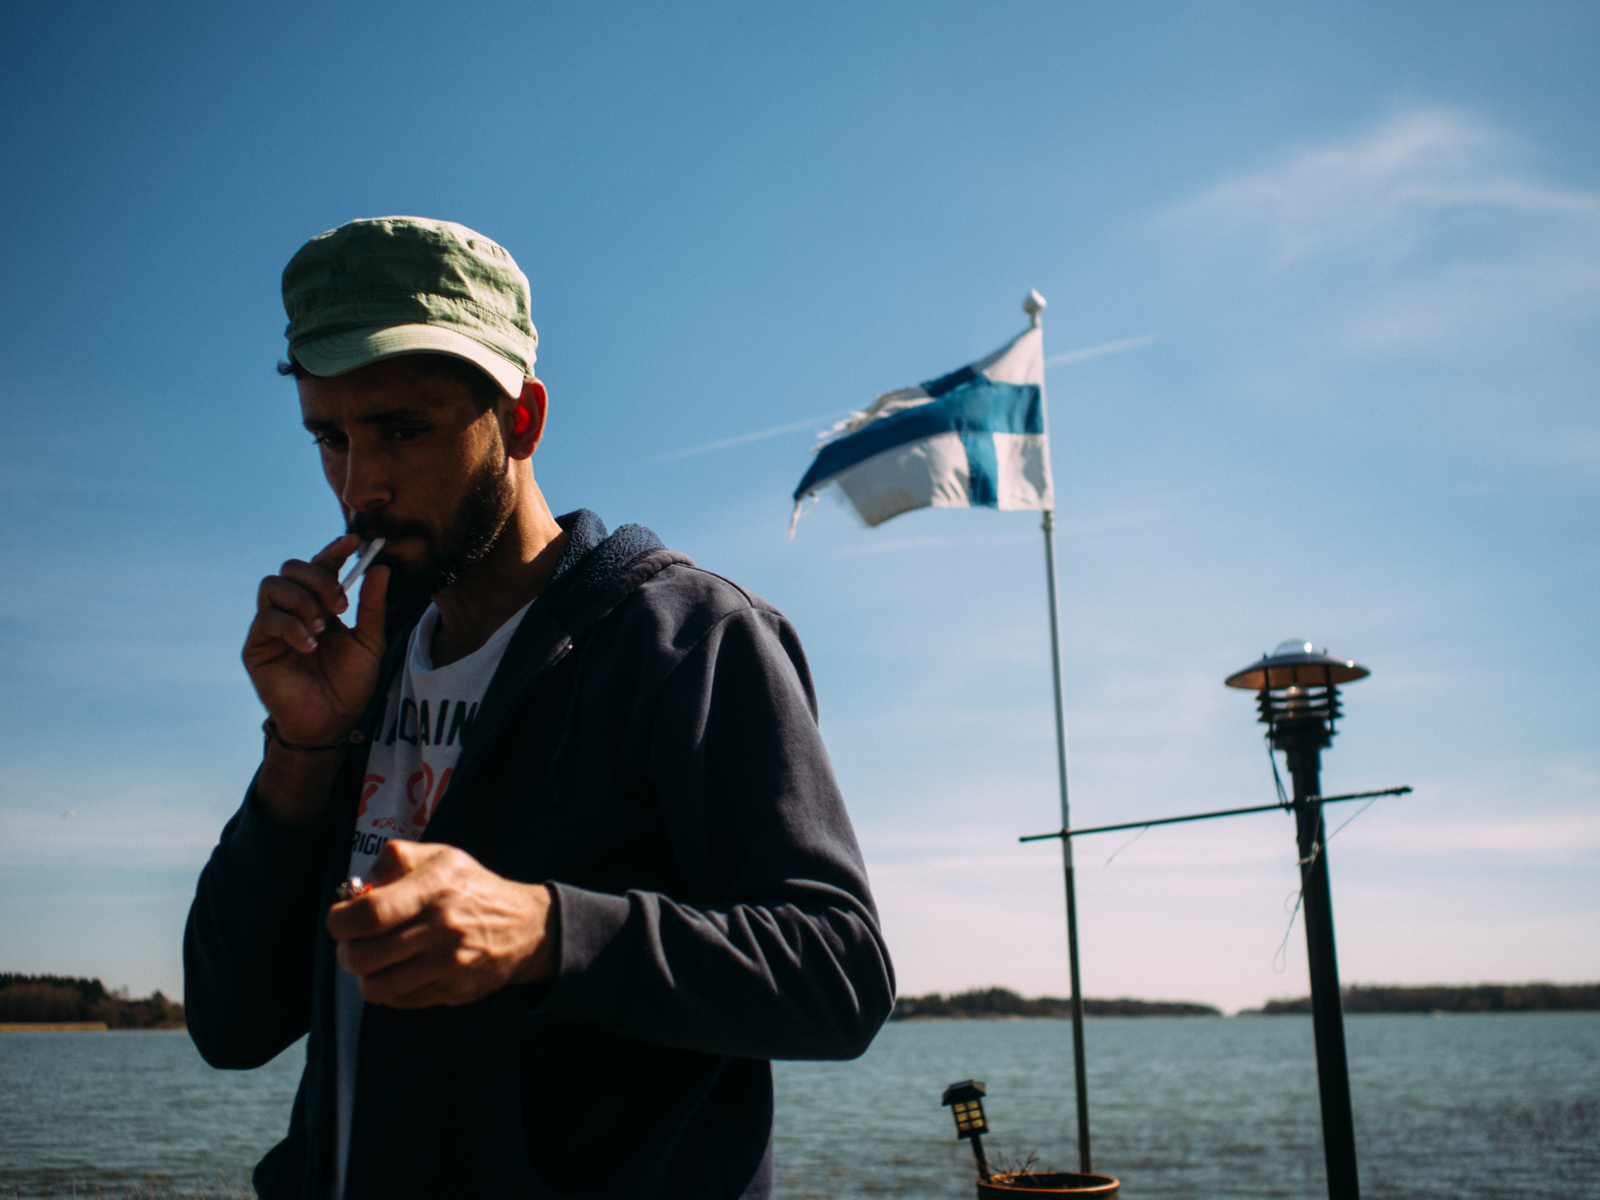 Ihab 27 arrived in Finland in September 2015. Like thousands of other people he crossed the Greek sea and then walked up all the Balcan route. He spent the last year and a half in Turkey, where he tried to apply for asylum without success. Ihab had to flee Baghdad in 2013 after he was life threatened at the magazine where only few months before he started to work. His family moved to India some time later, and is now applying for asylum there.